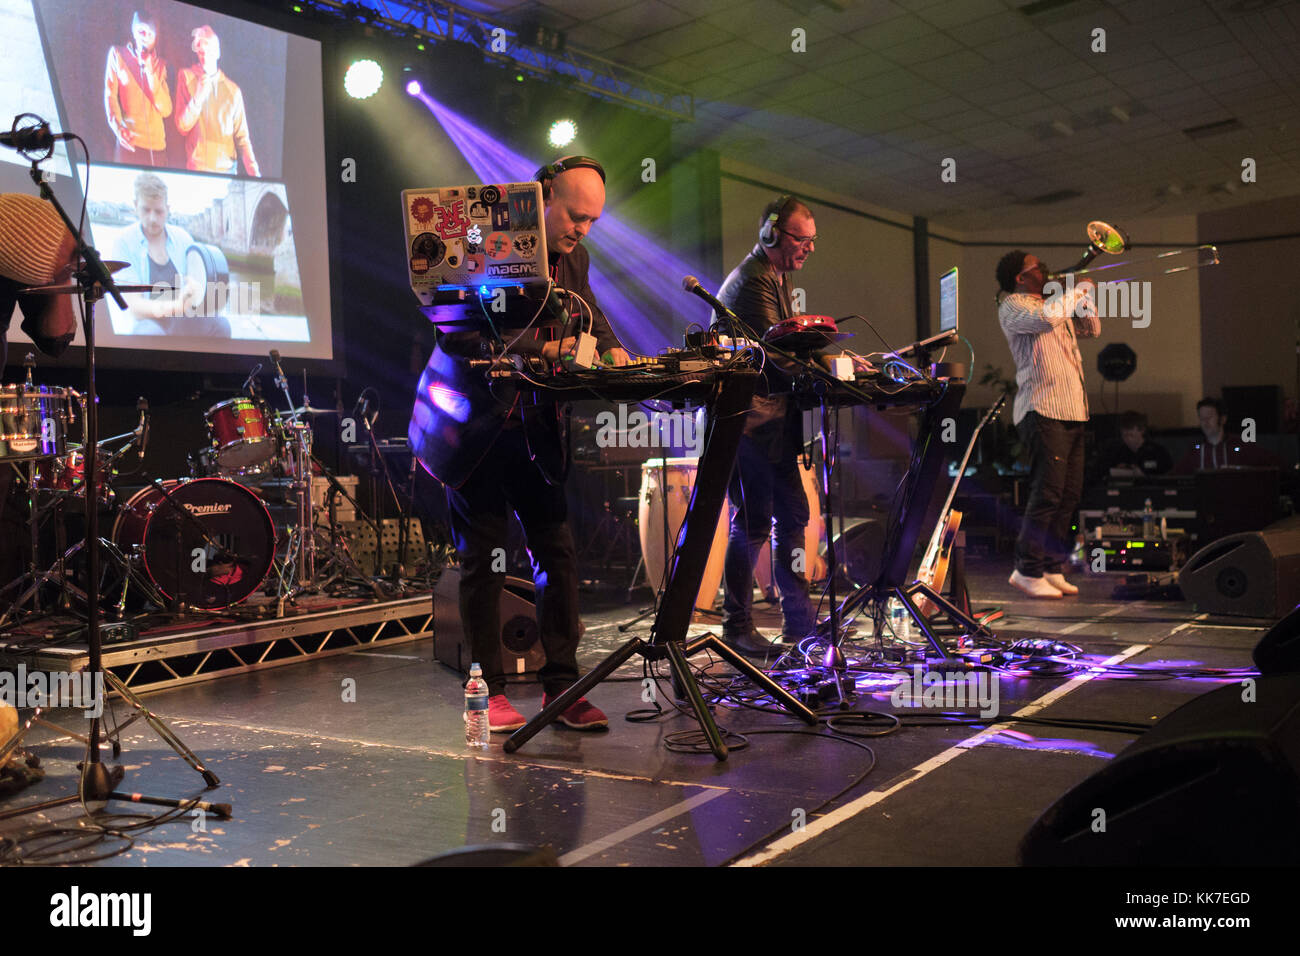 Addictive TV at the Musicport music festival, Whitby, North Yorkshire, UK, October 21, 2017 - Stock Image